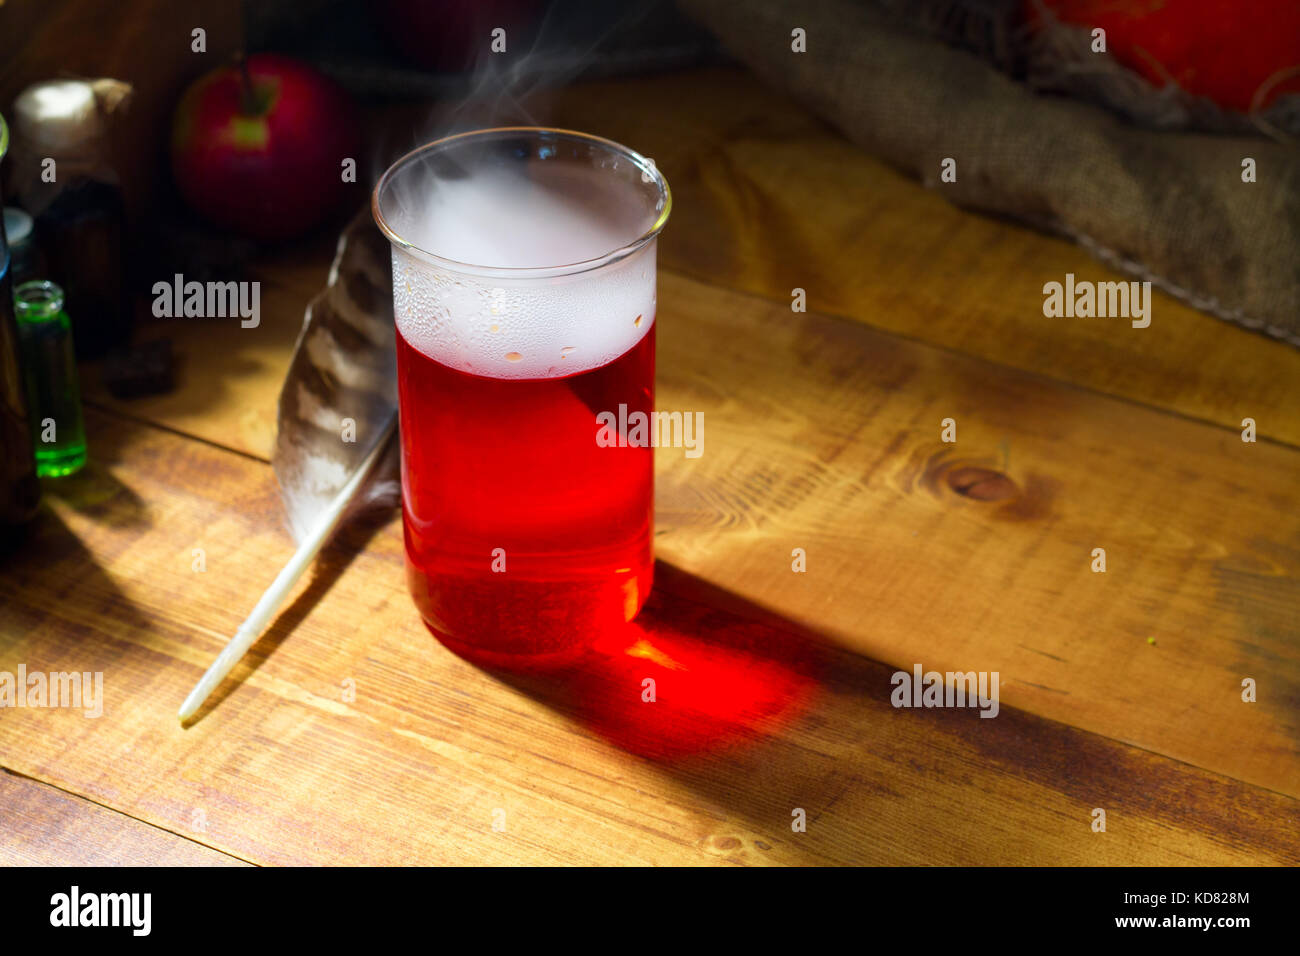 red Potion with smoke or fog on wooden background - Stock Image